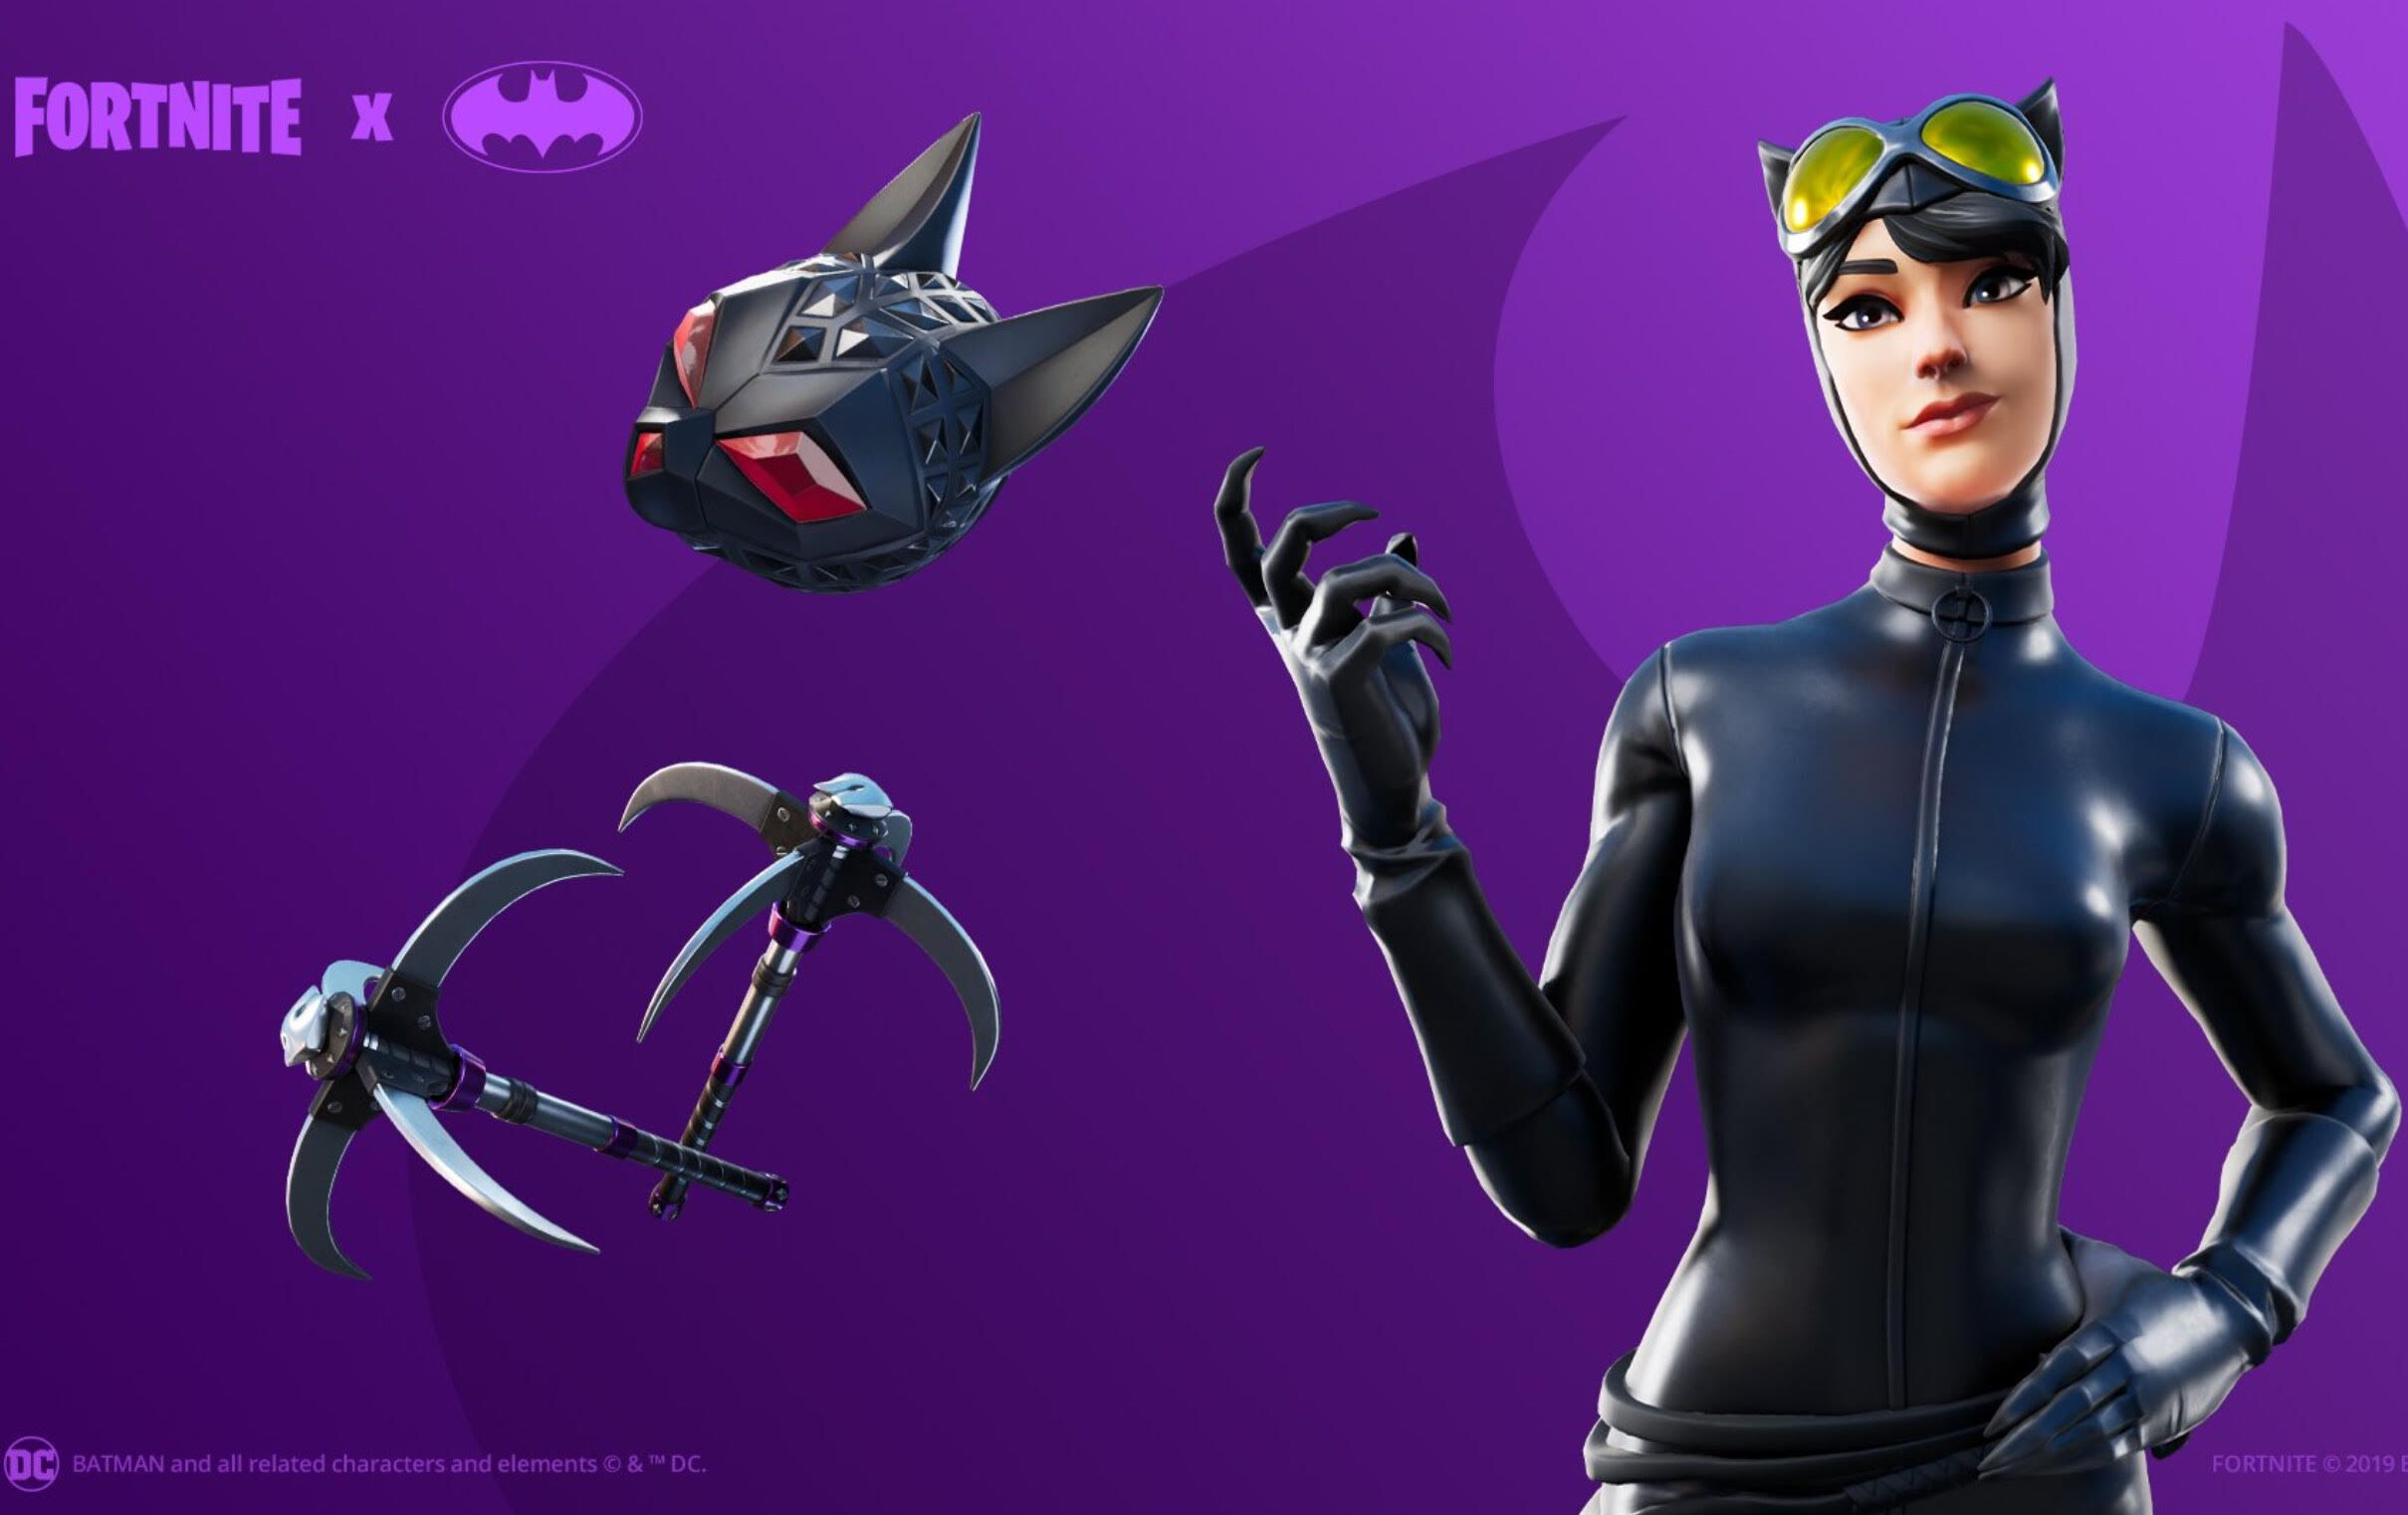 Fortnite: Today's Item Shop Featuring Catwoman and Wukong 10/13/19